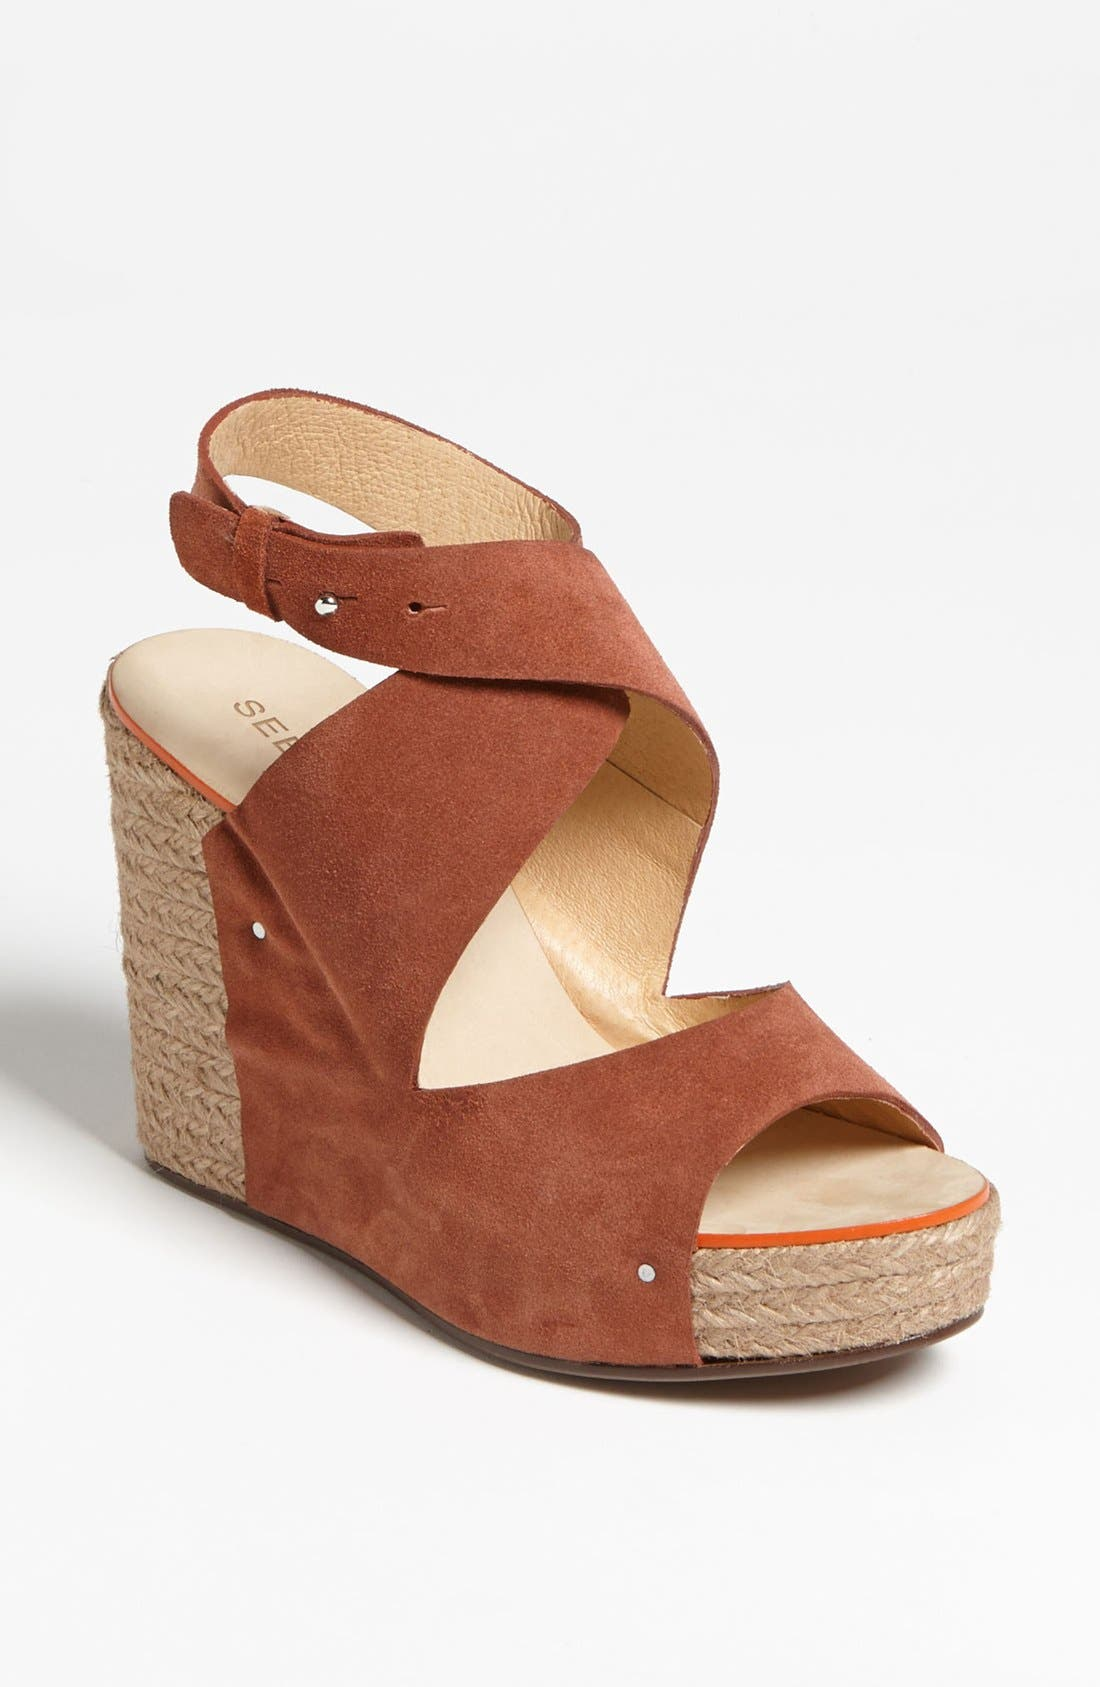 Main Image - See by Chloé 'Mica' Wedge Sandal